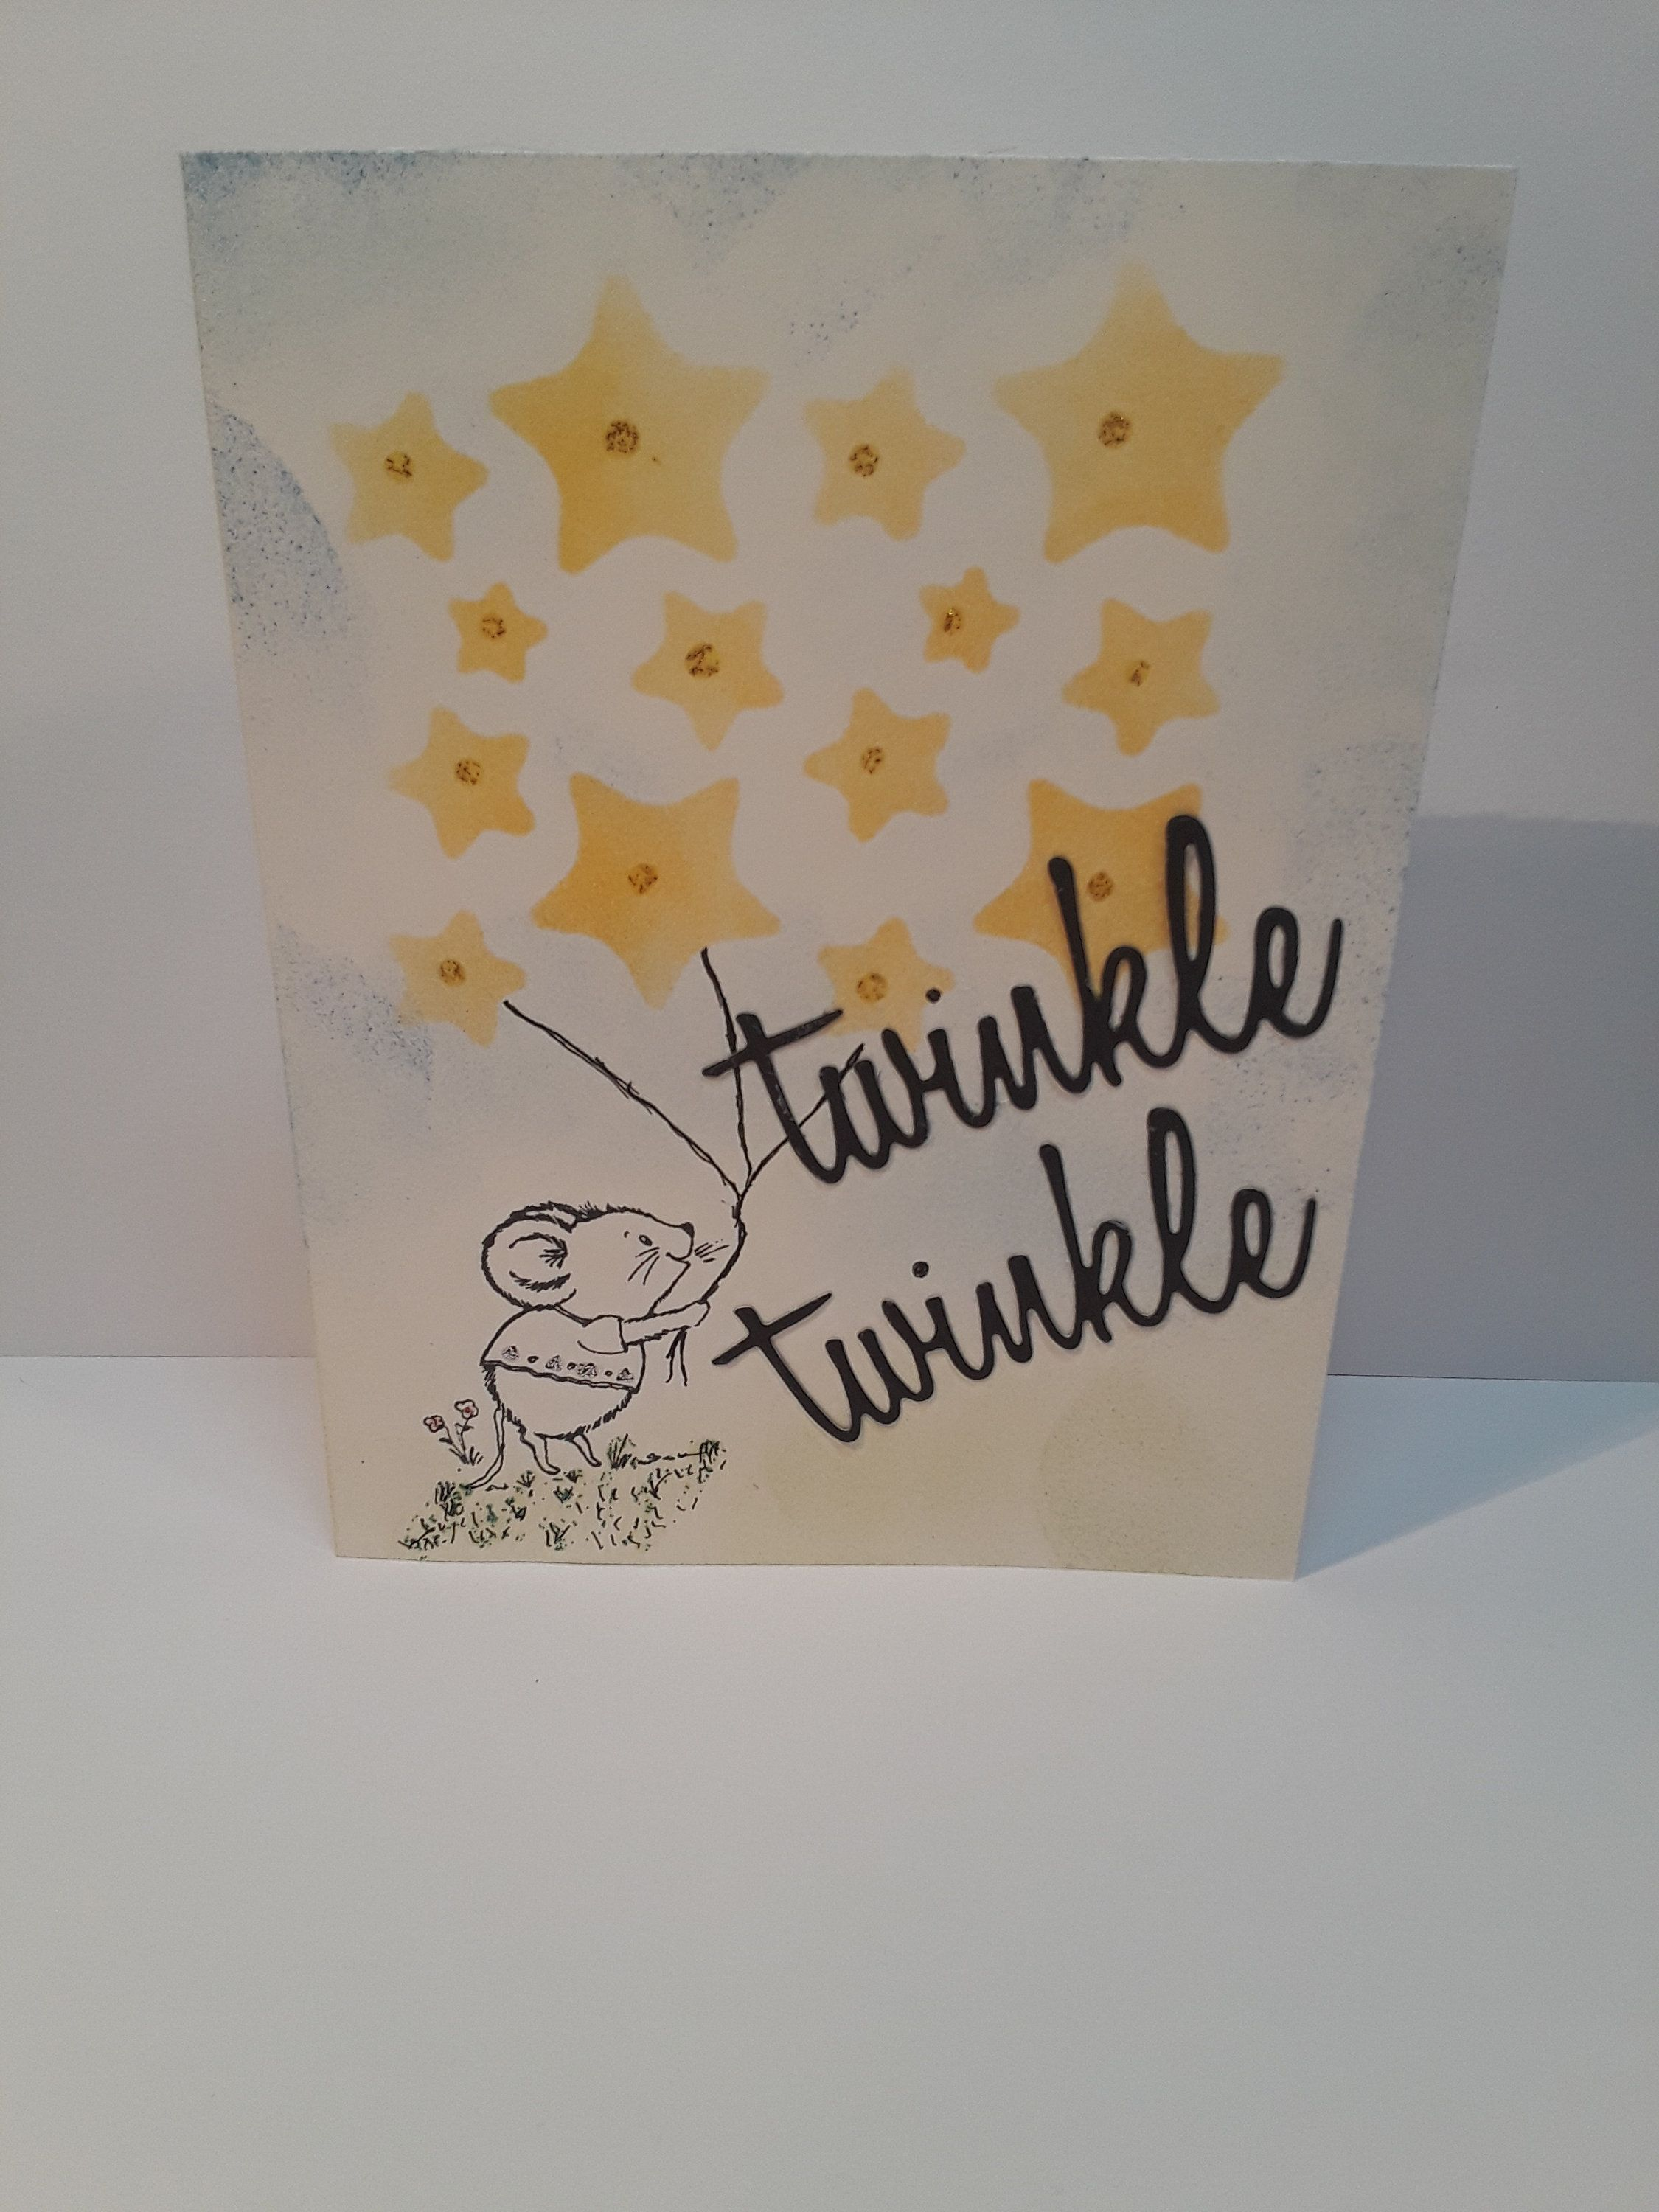 Handmade greeting card thinking of you hello friendship twinkle handmade greeting card thinking of you hello friendship twinkle twinkle little star mouse card cards pinterest twinkle twinkle m4hsunfo